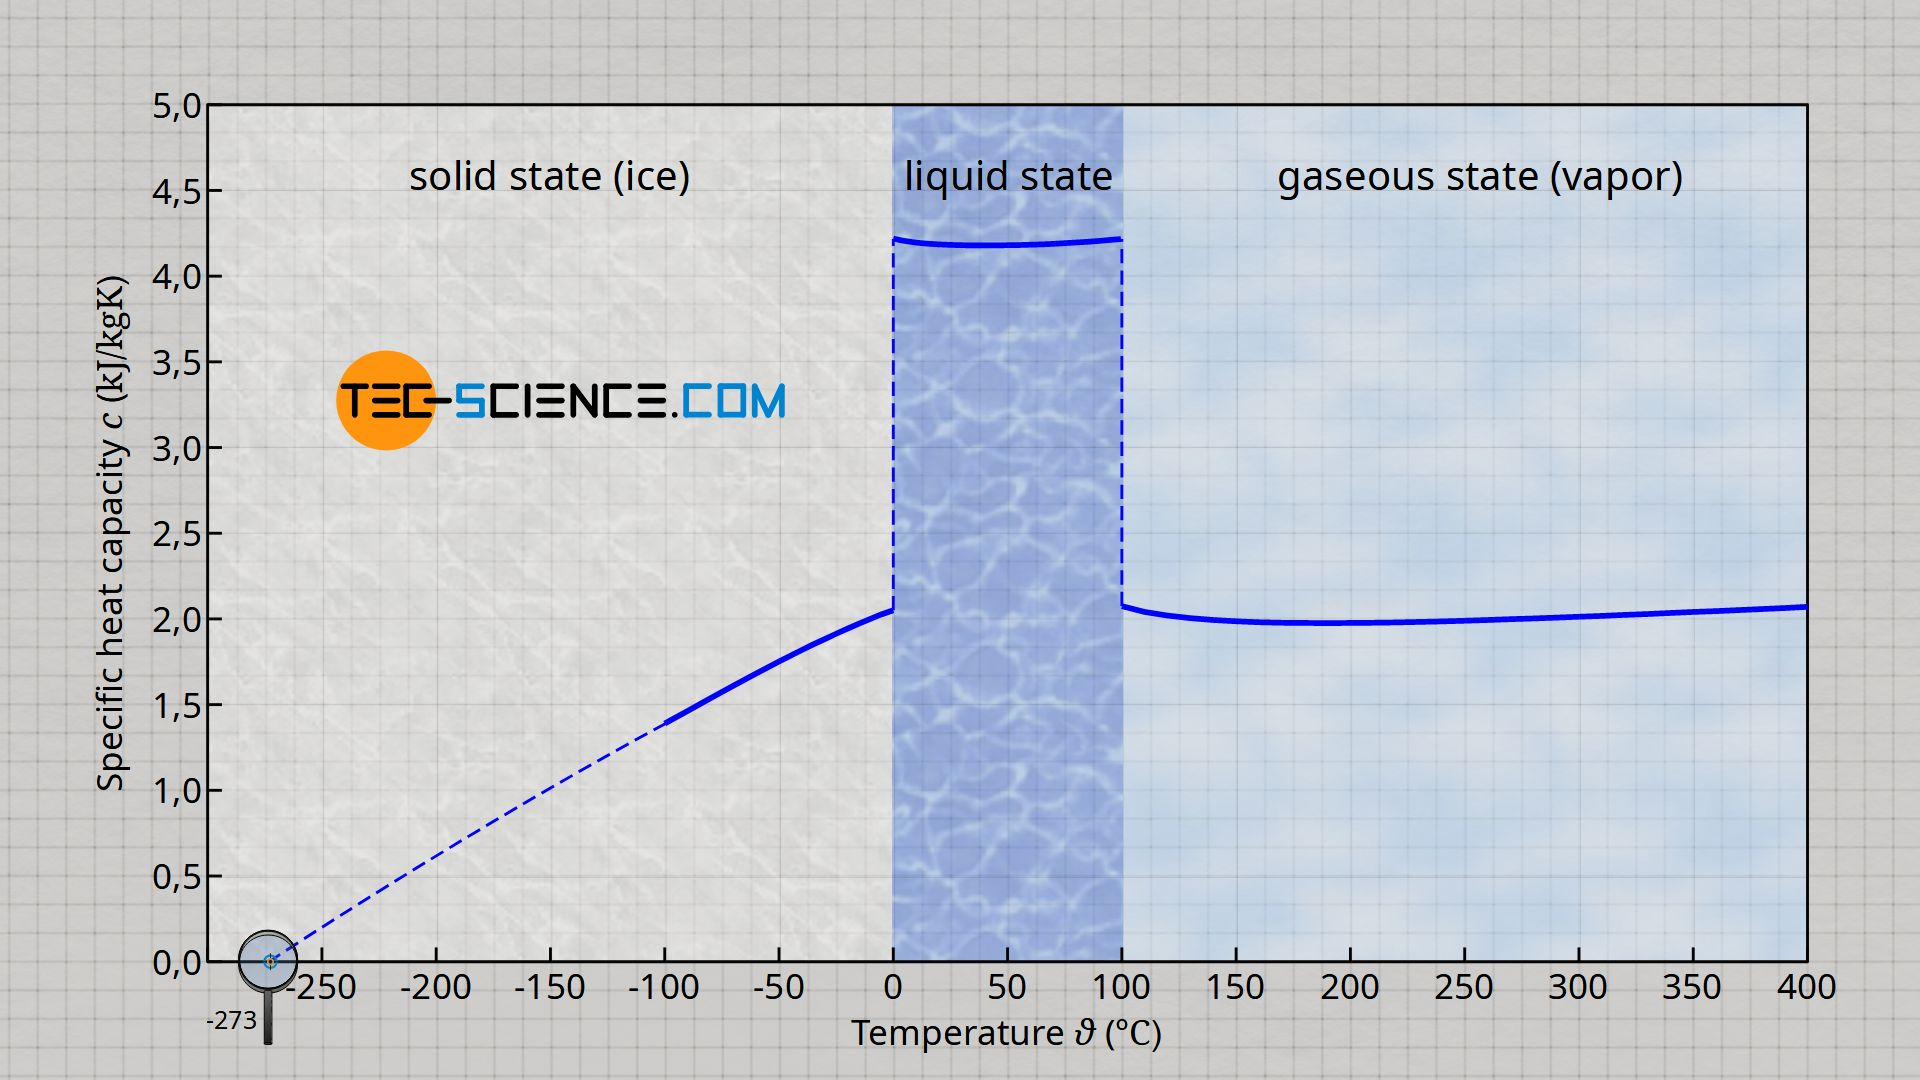 Specific heat capacity of water as a function of state of matter and temperature